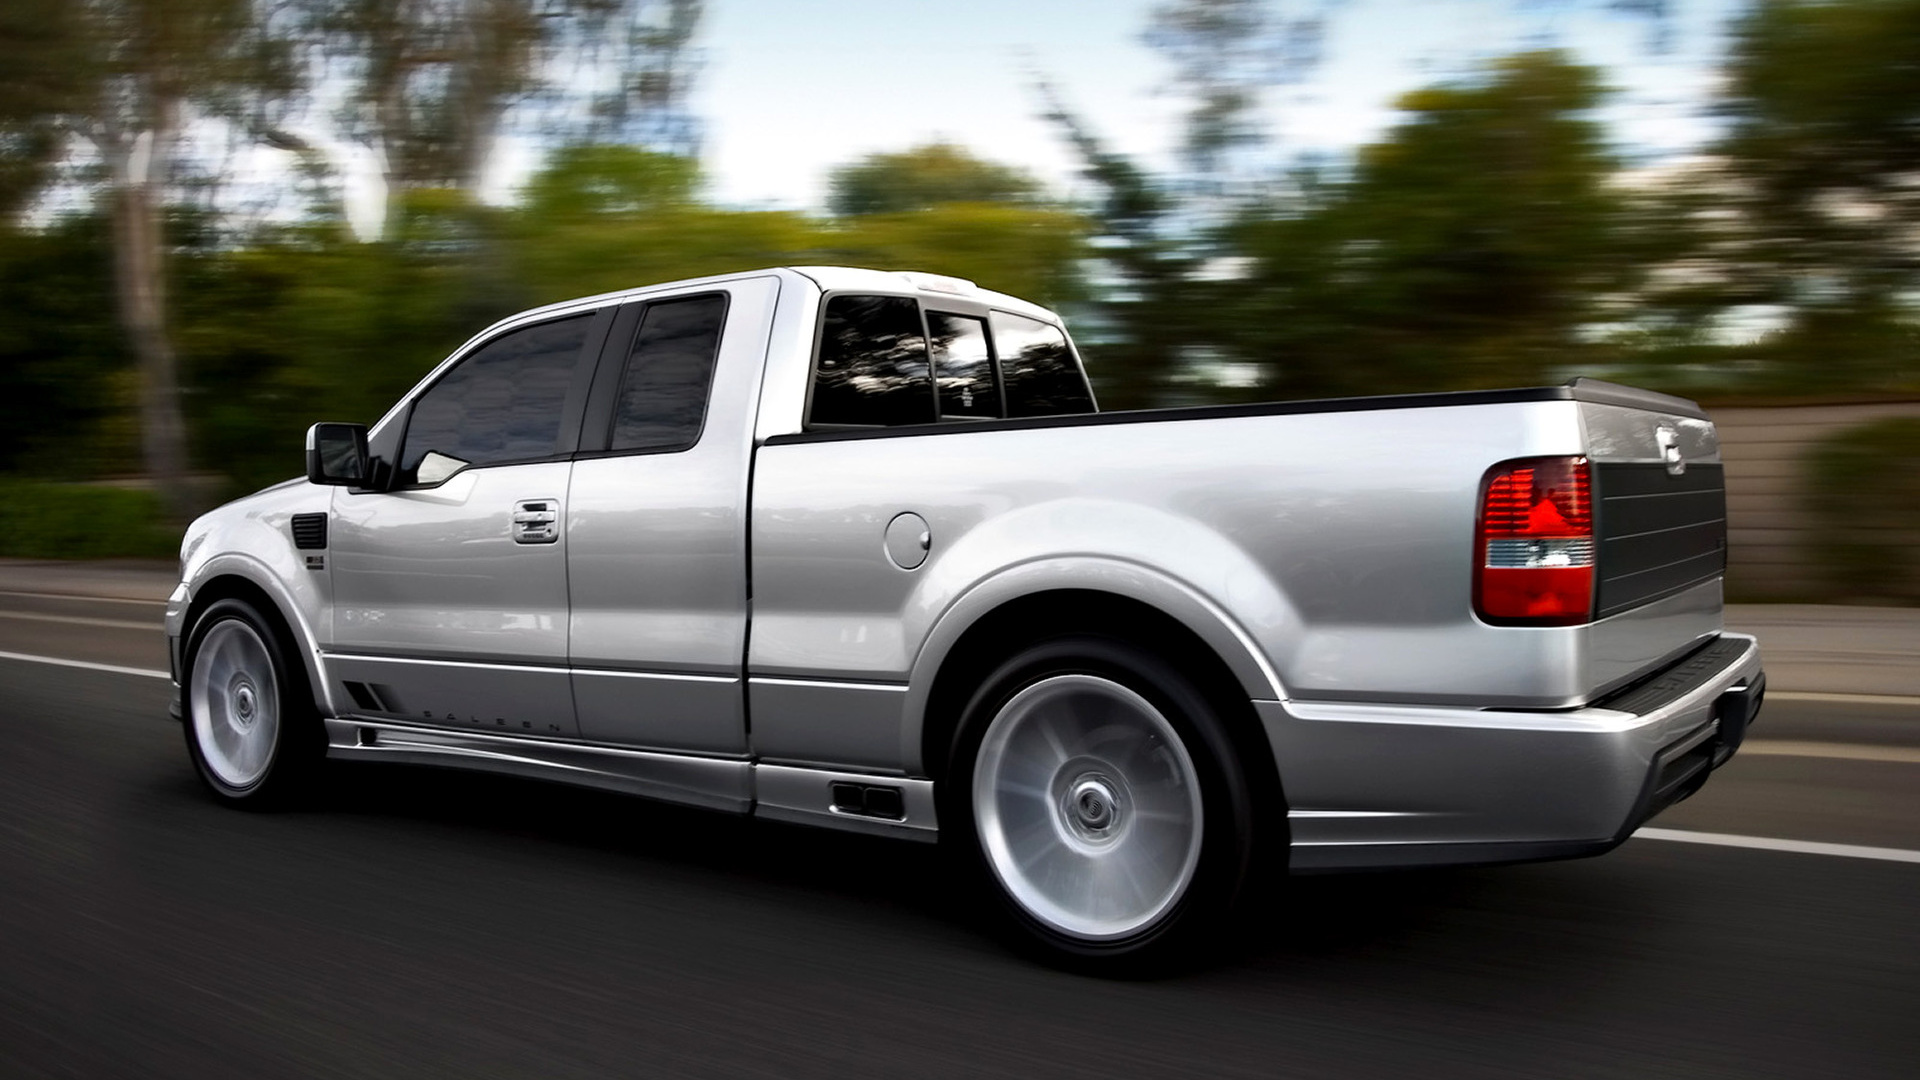 f 150 crew cab saleen s331 pic autos post. Black Bedroom Furniture Sets. Home Design Ideas